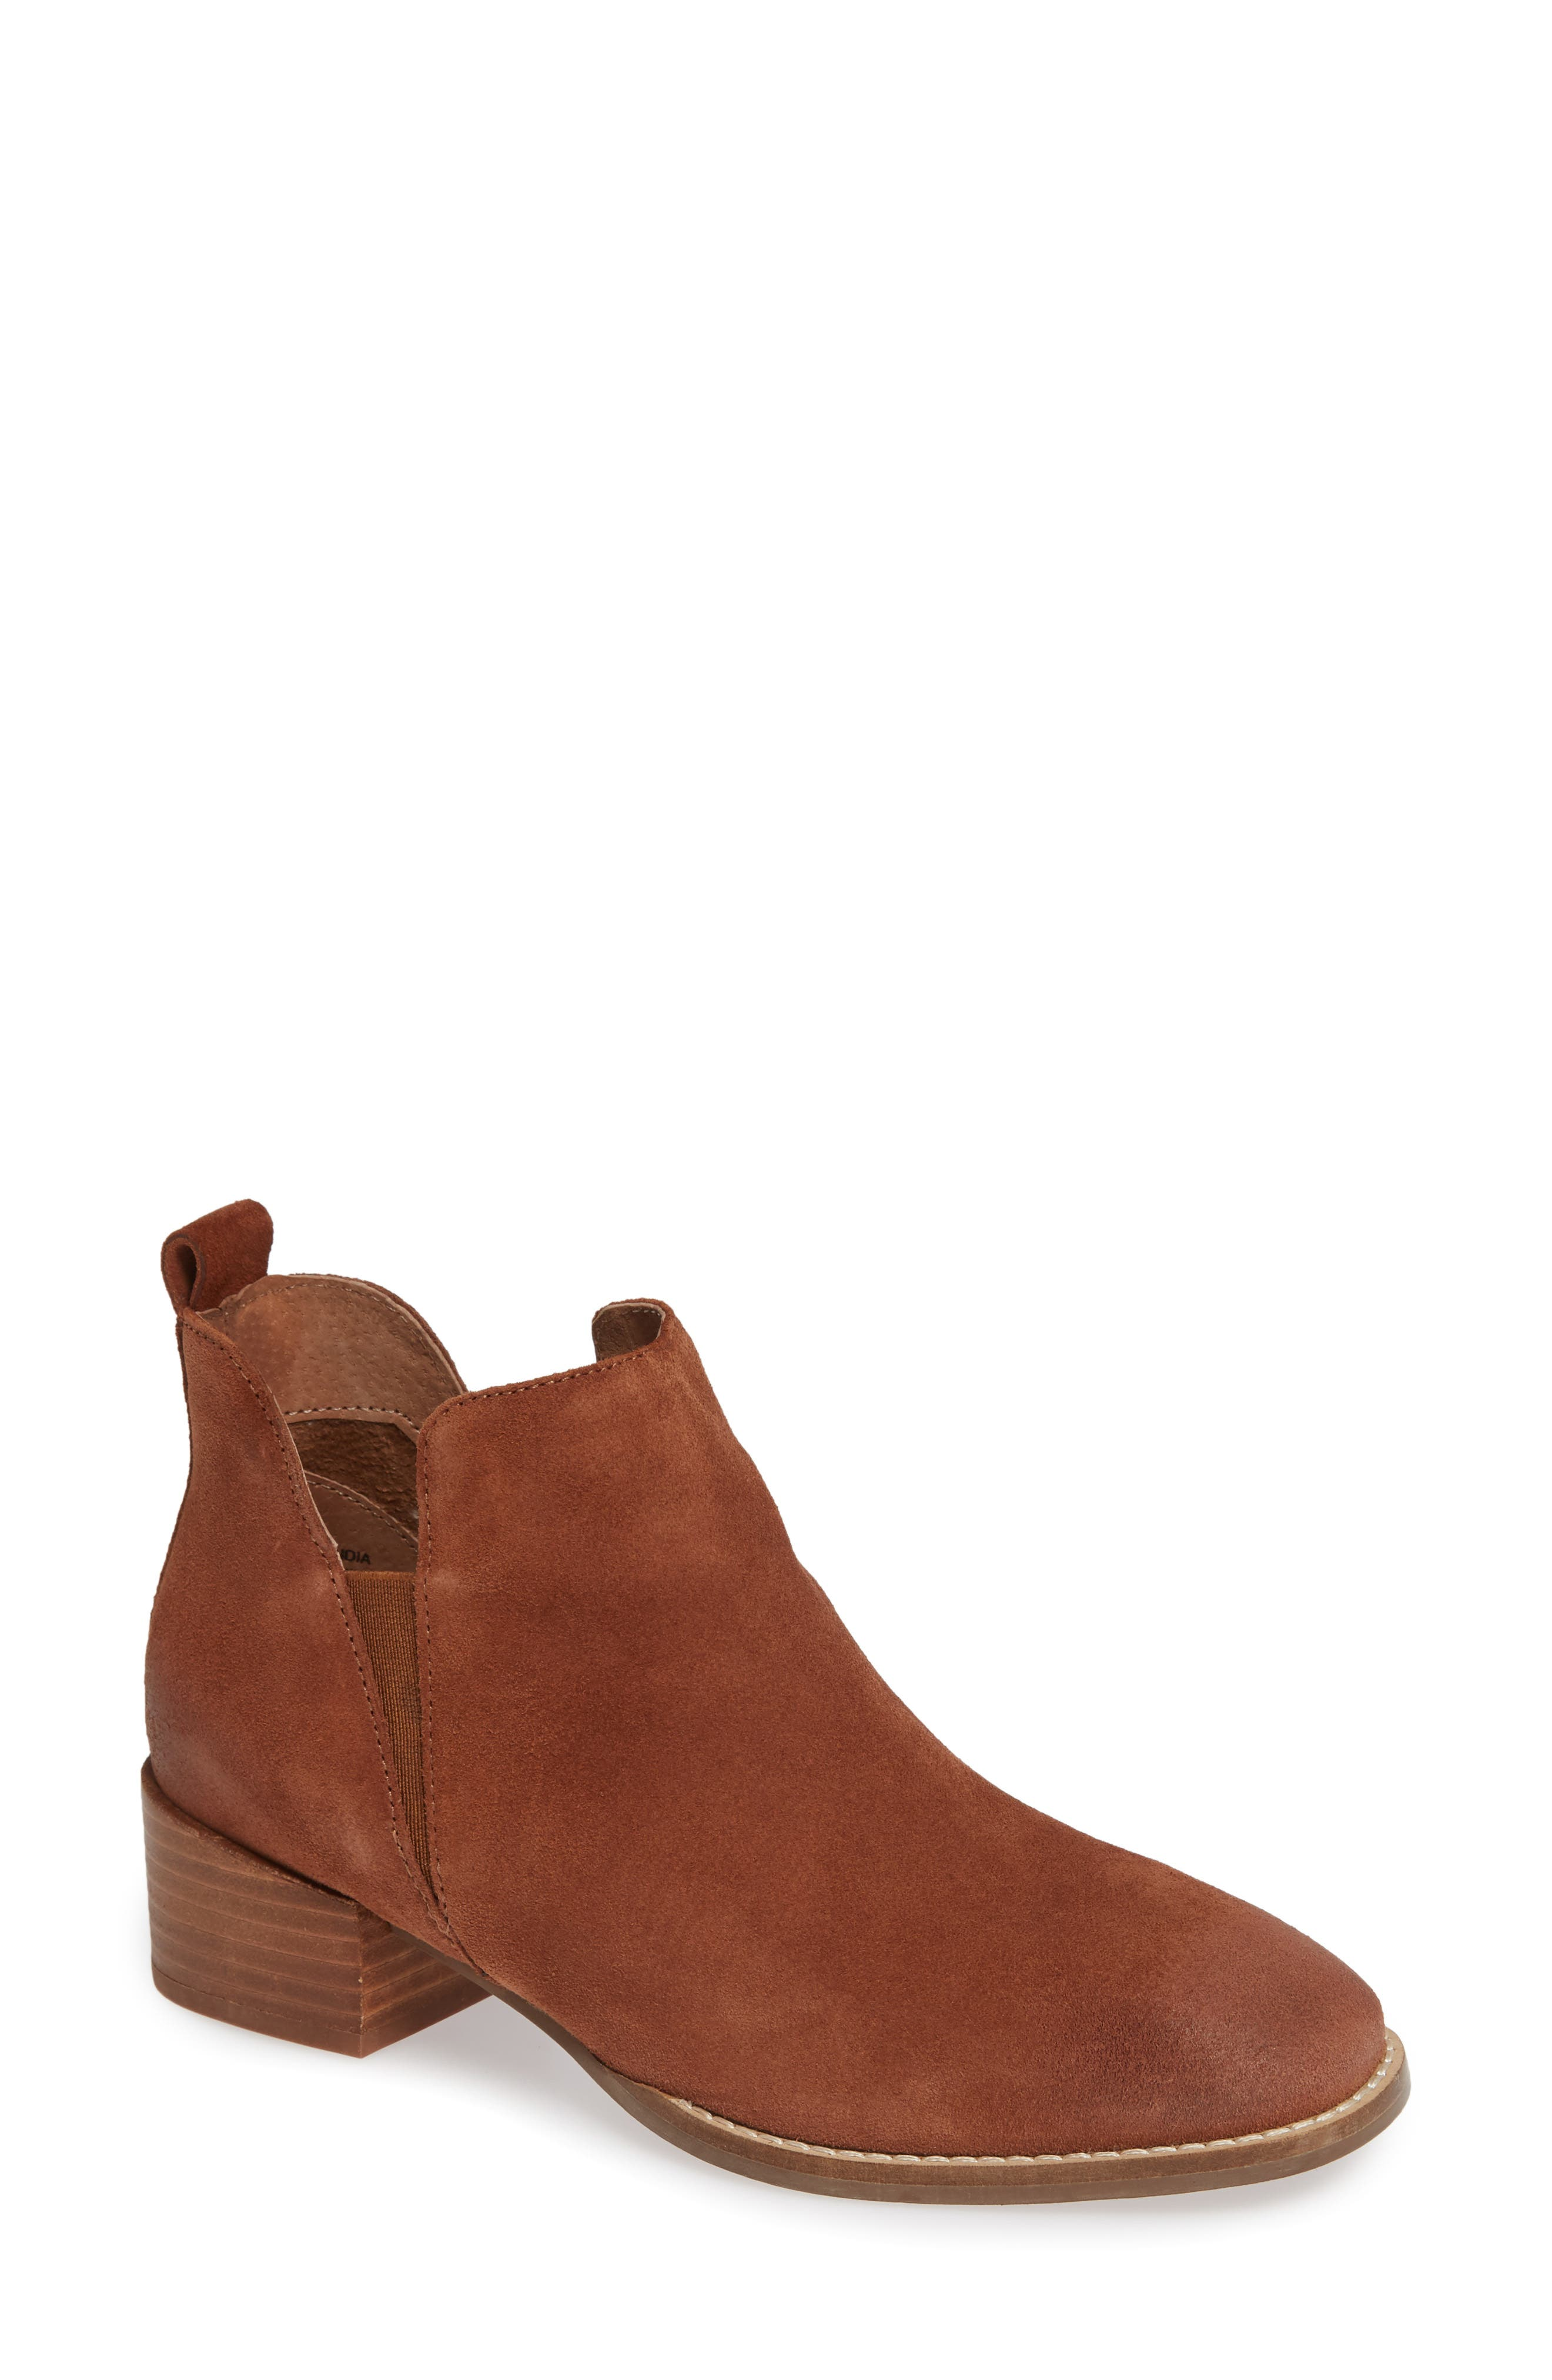 Seychelles Offstage Boot- Brown